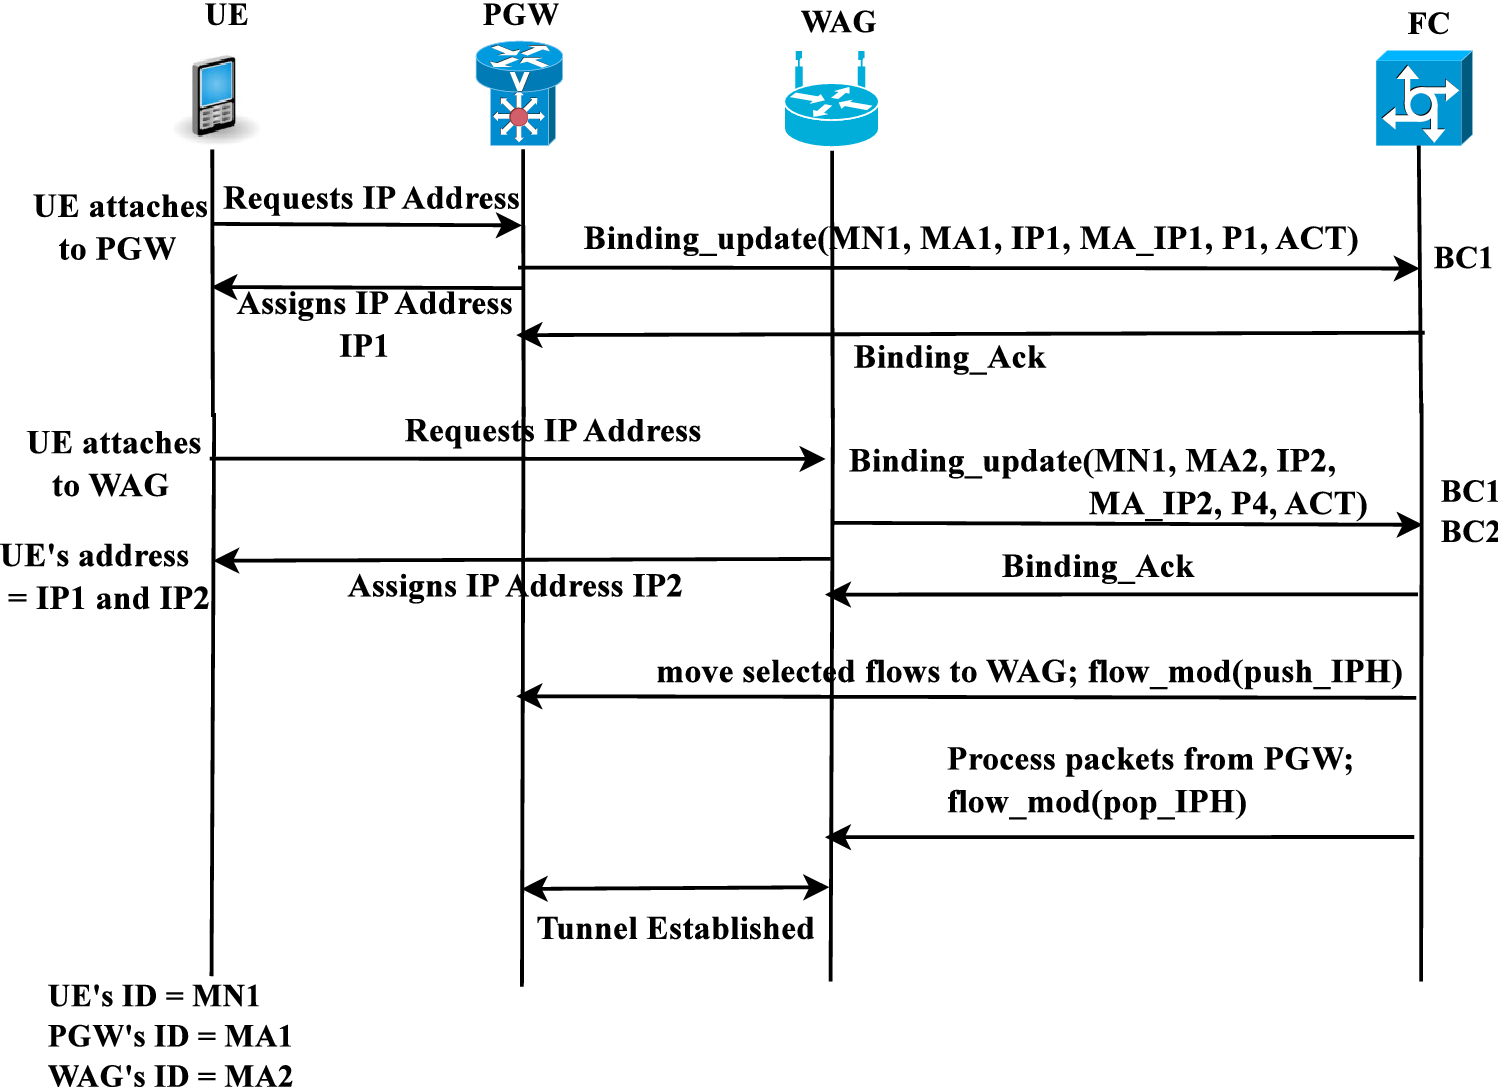 Network architecture for seamless flow mobility between LTE and WiFi